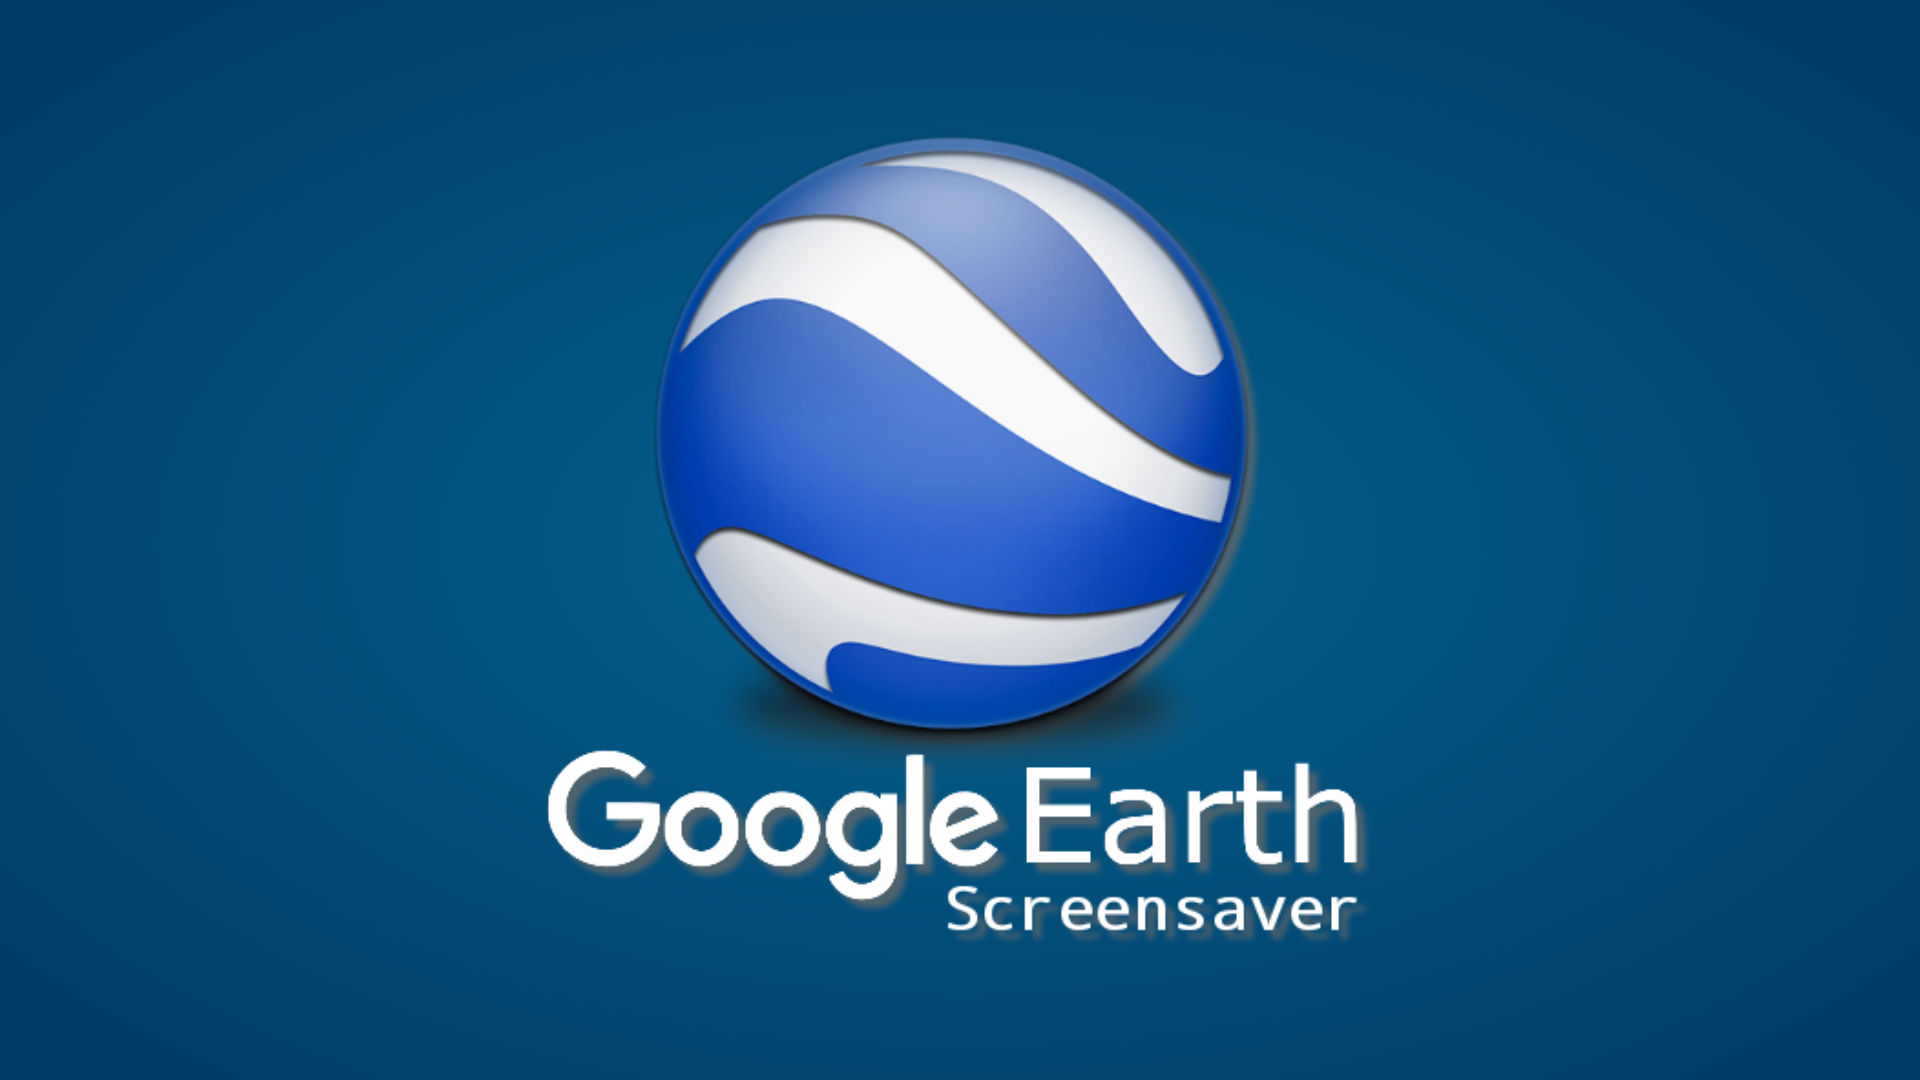 Index of /xbmc/addons/krypton/screensaver google earth